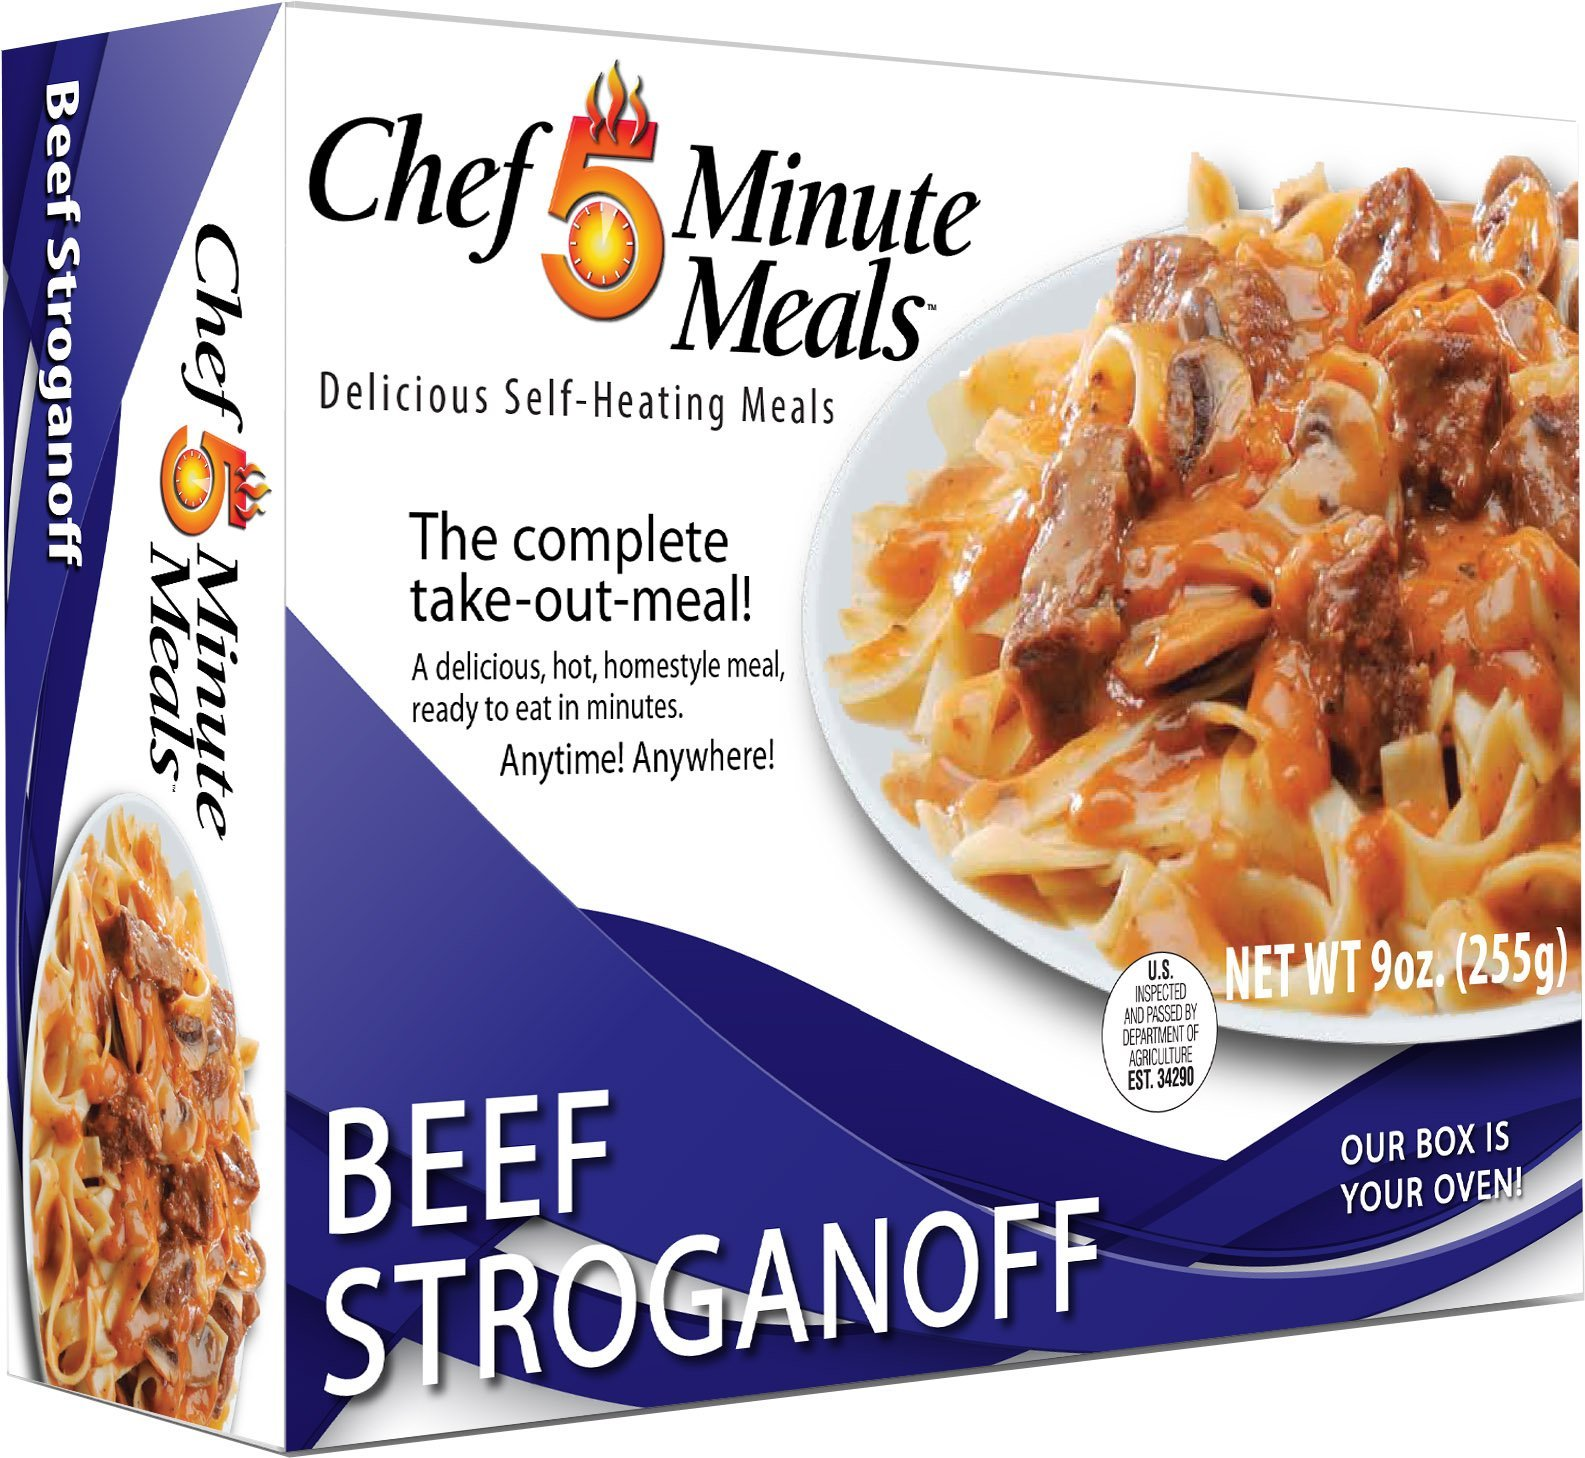 Chef 5 Minute Meals Beef Stroganoff with Noodles